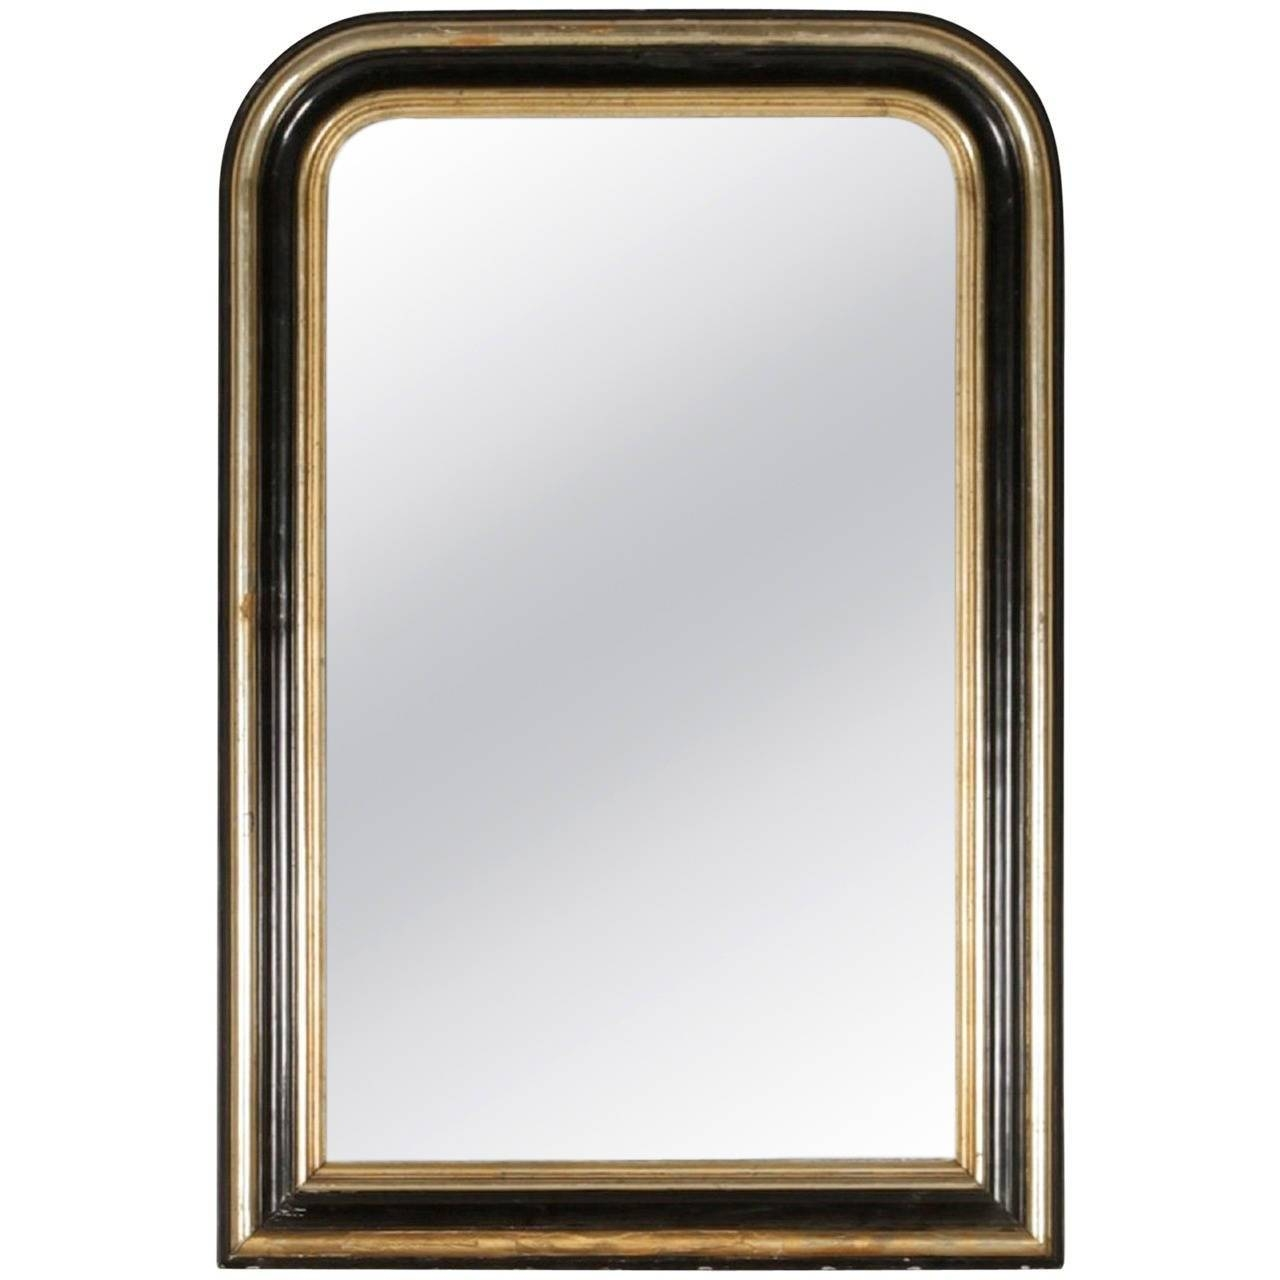 Ebonized And Silver Gilt Louis Philippe Mirror With Molded Frame regarding Large Silver Gilt Mirrors (Image 4 of 15)